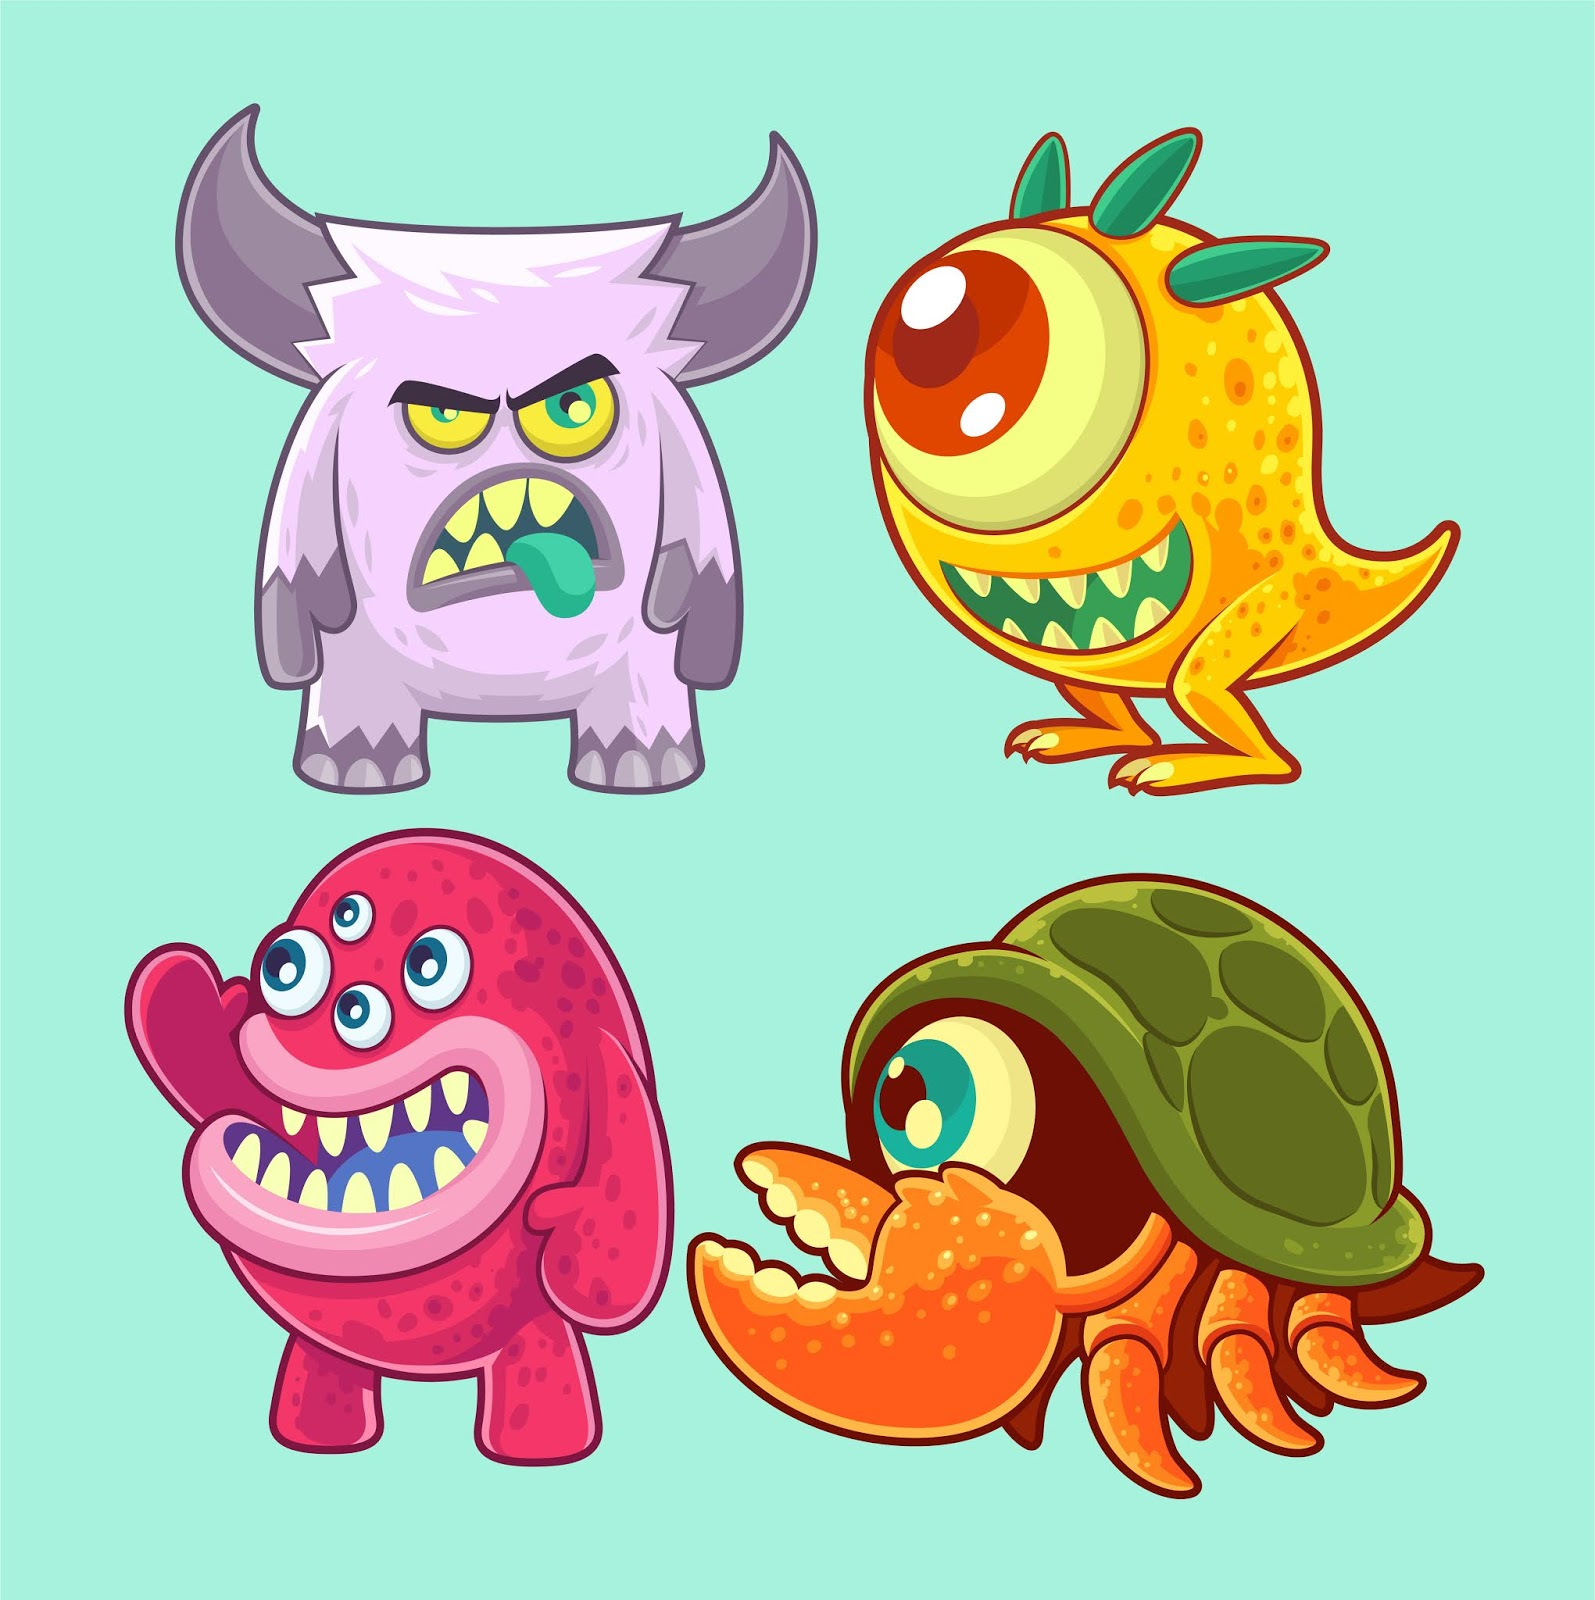 Cute Funny Monsters Set Free Download Vector CDR, AI, EPS and PNG Formats